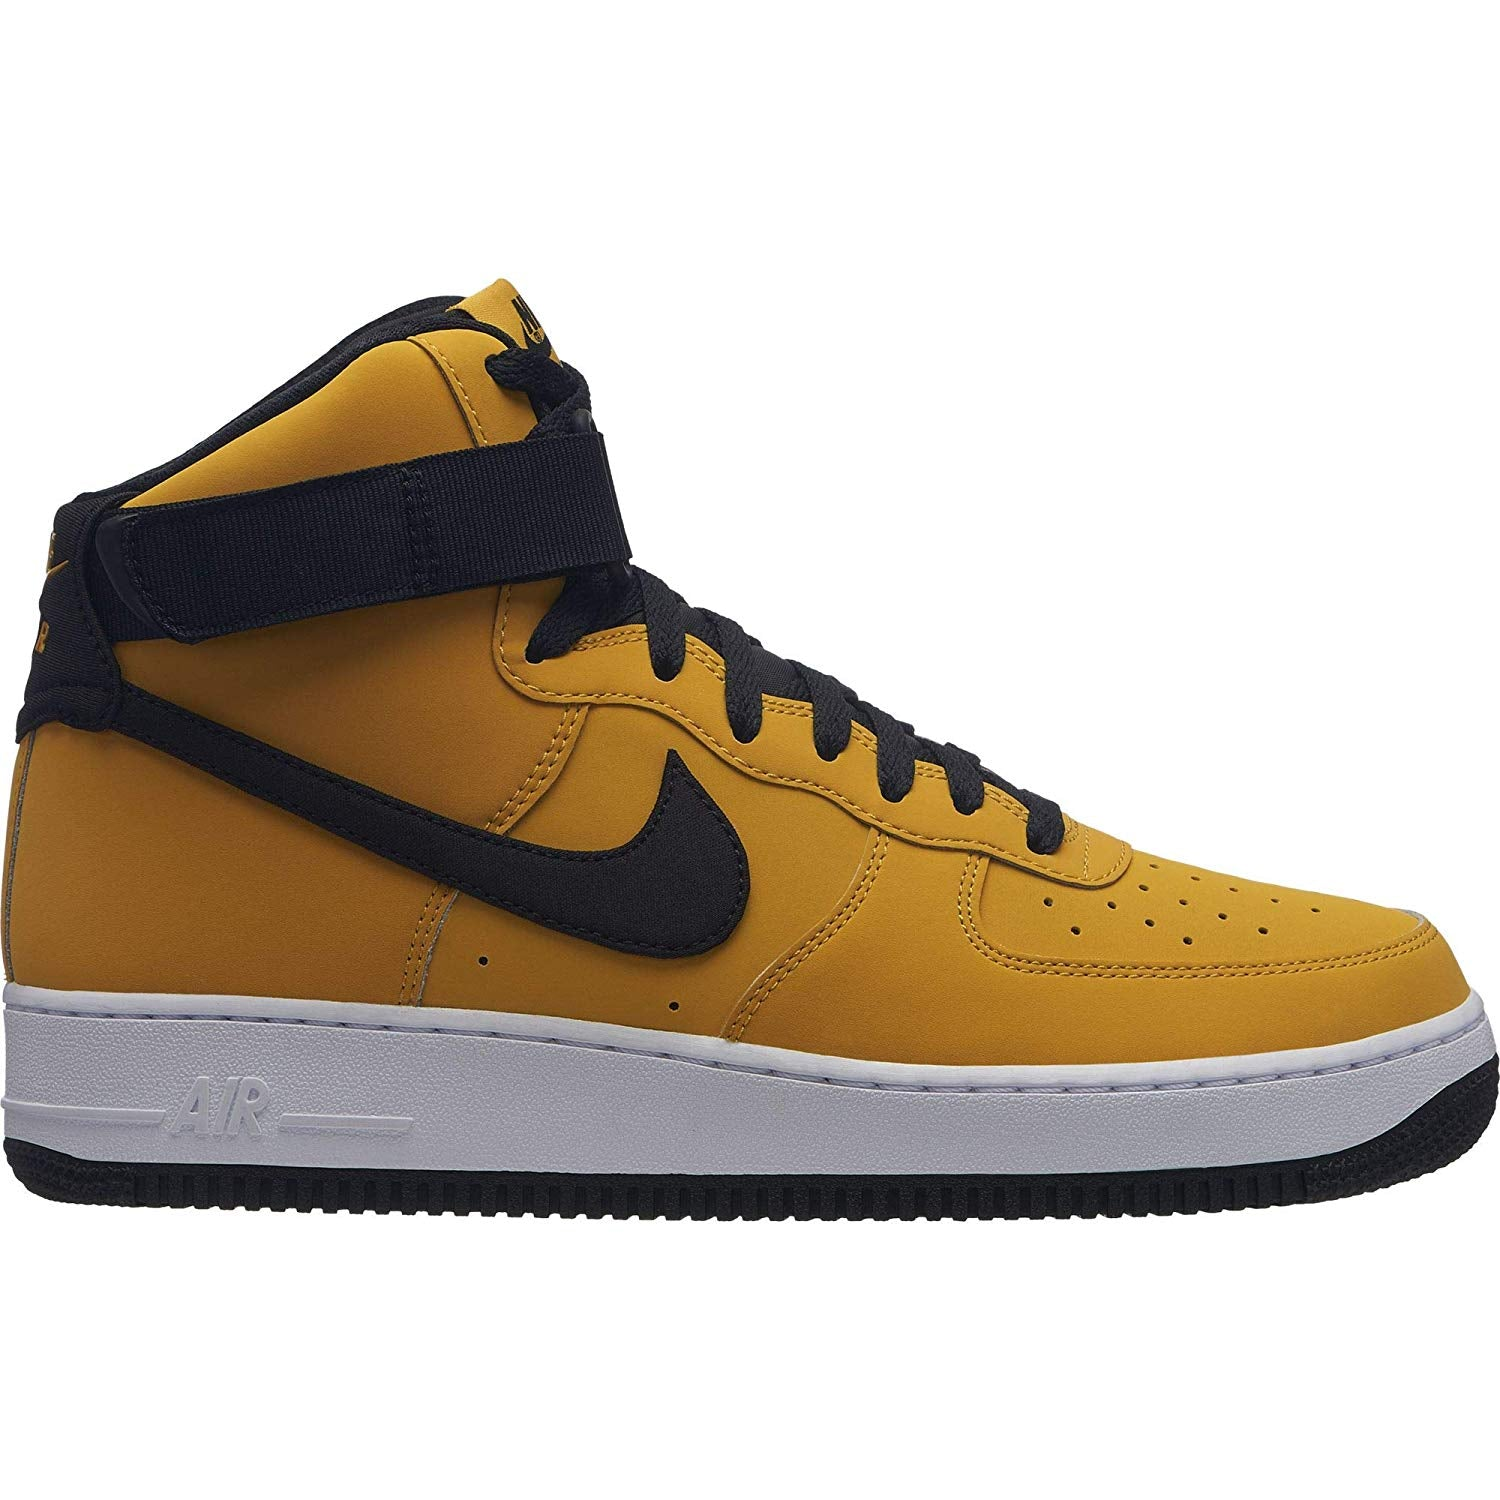 297261176c80  290 NIKE air Force 1 HI Retro QS Mens hi top Trainers 743546 Sneakers –  kicks closet nyc